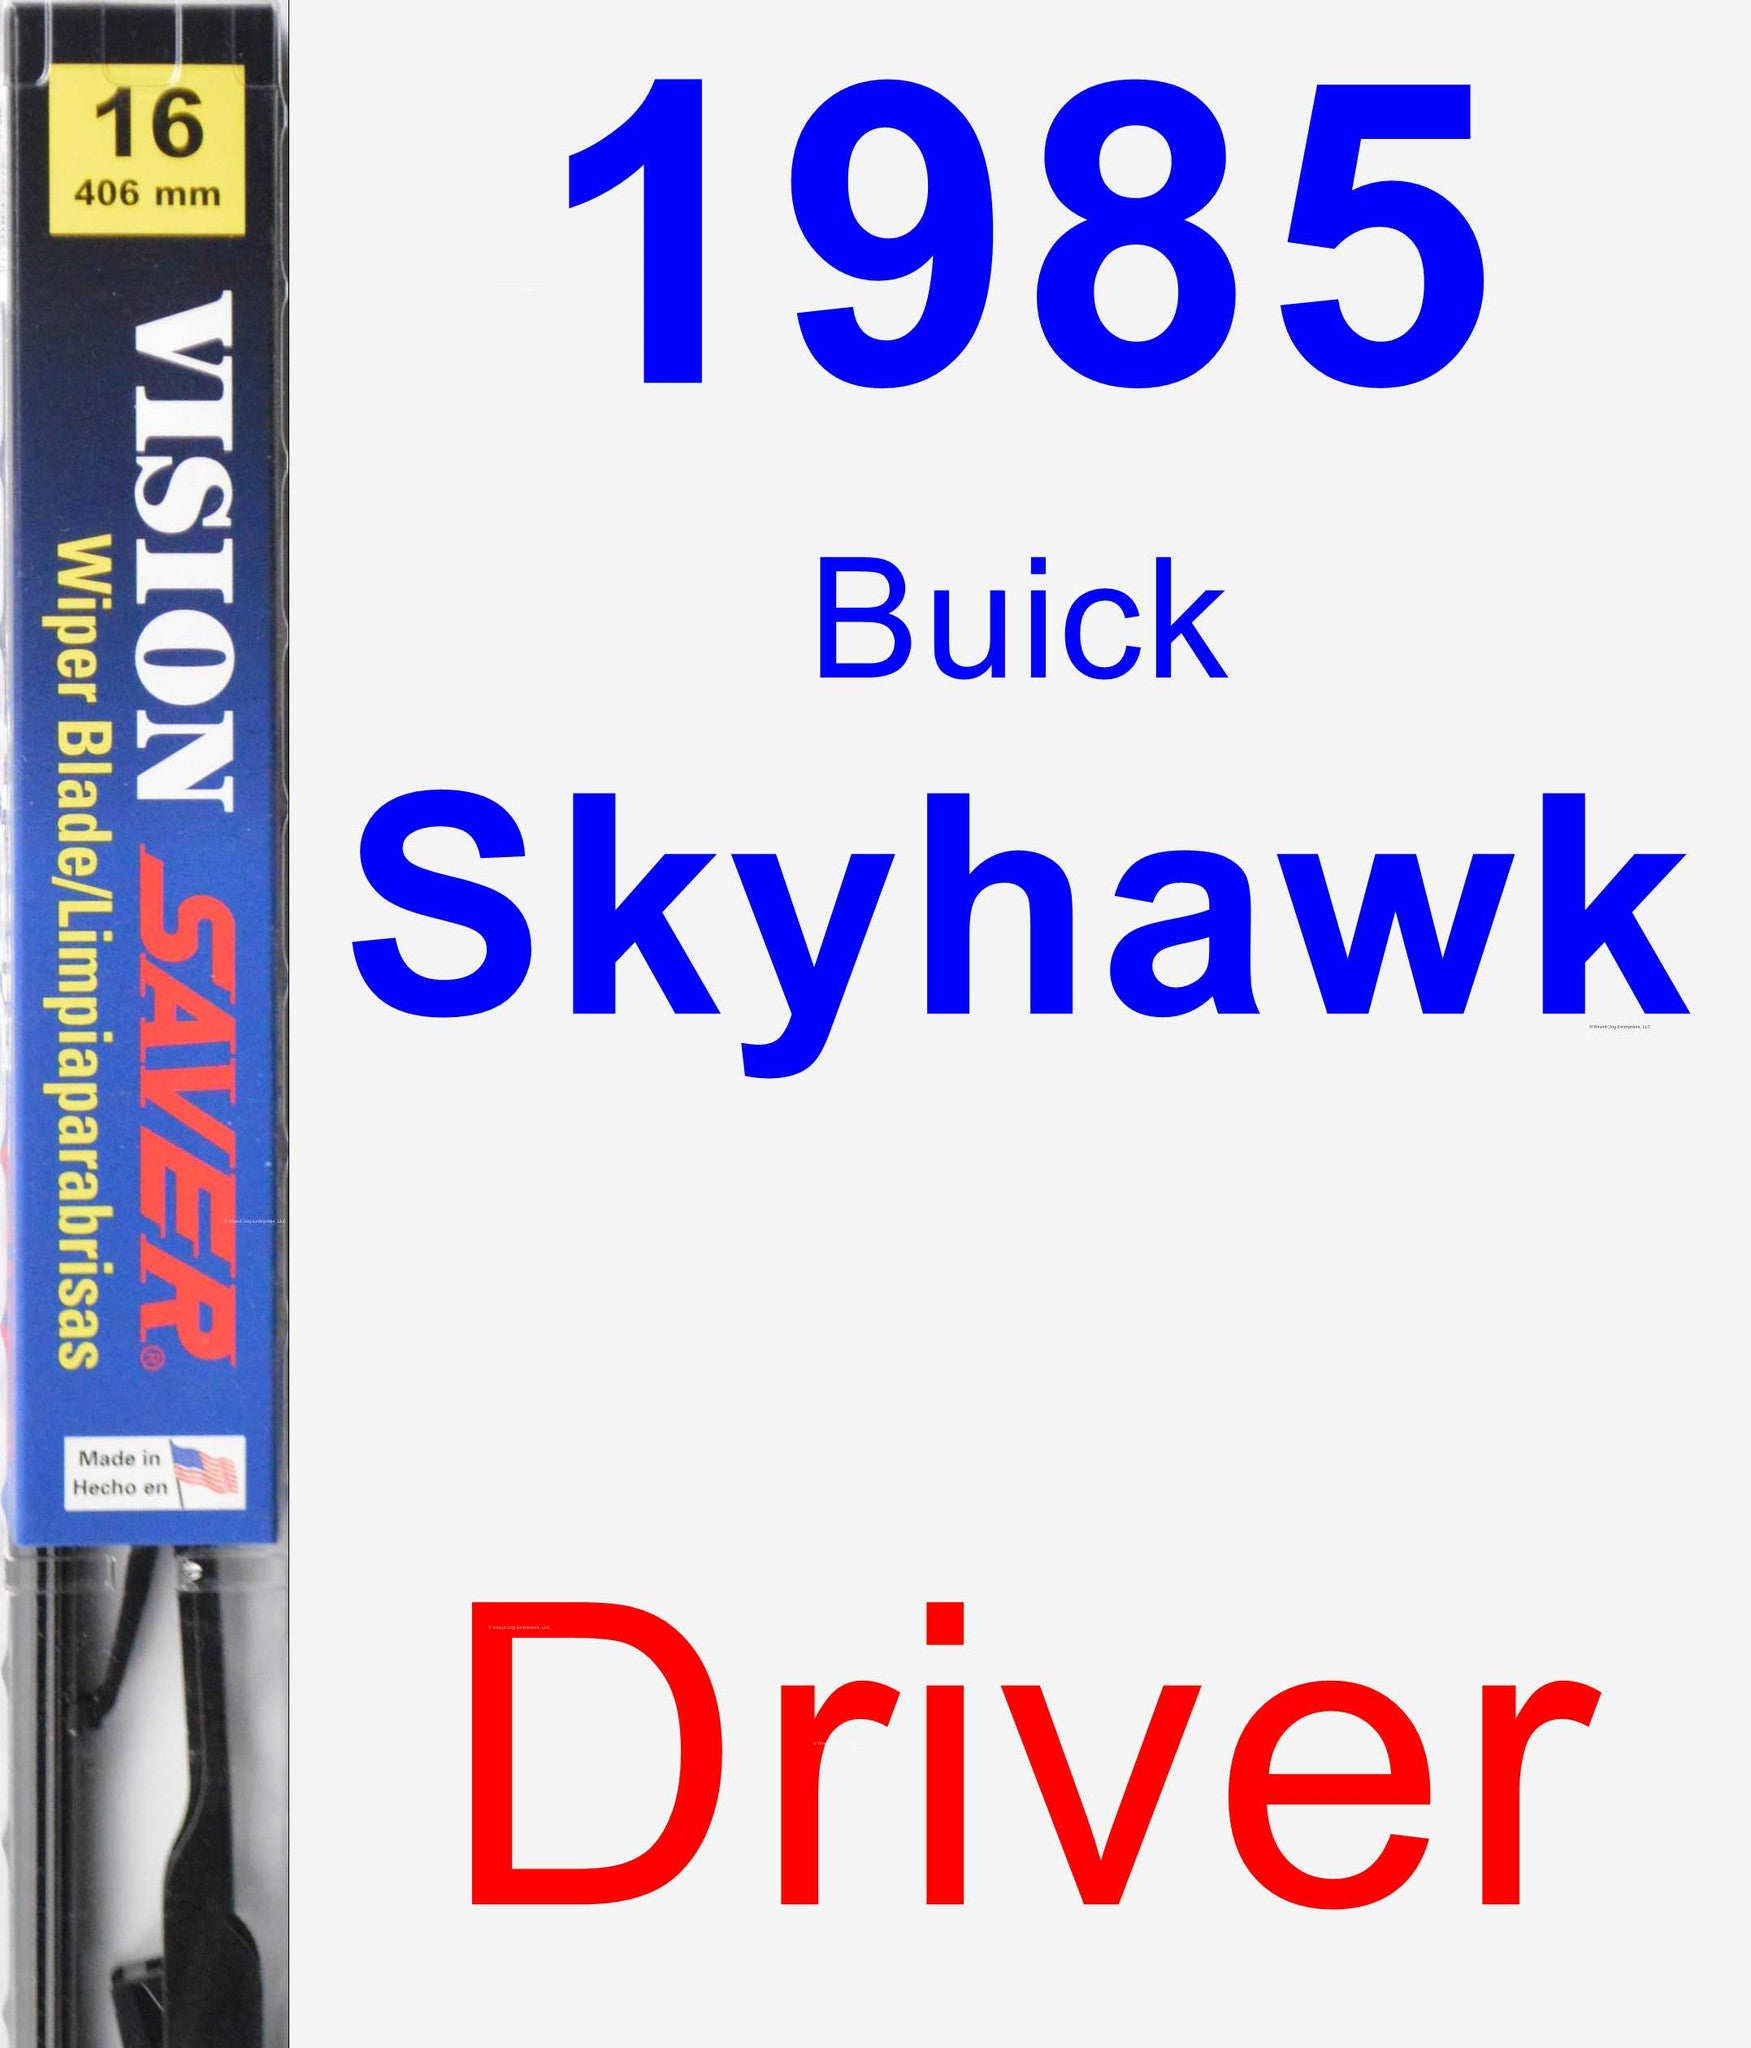 Driver Wiper Blade for 1985 Buick Skyhawk - Vision Saver